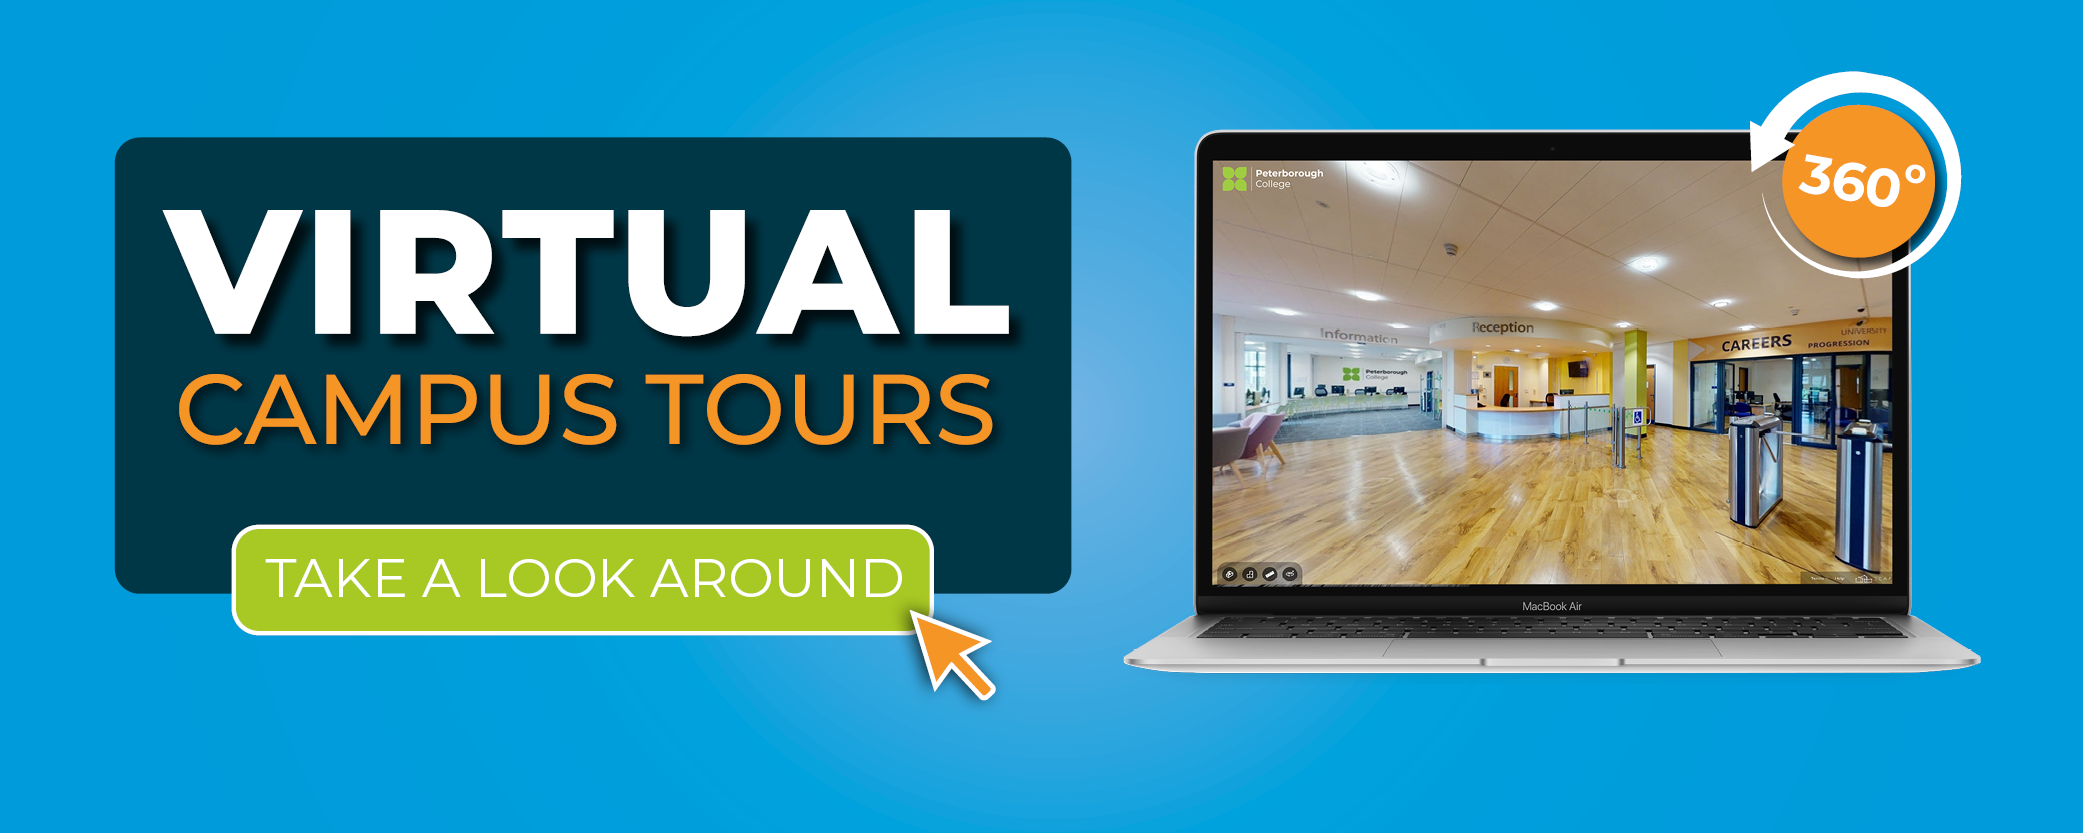 Image displays text which says virtual campus tours - take a look around.